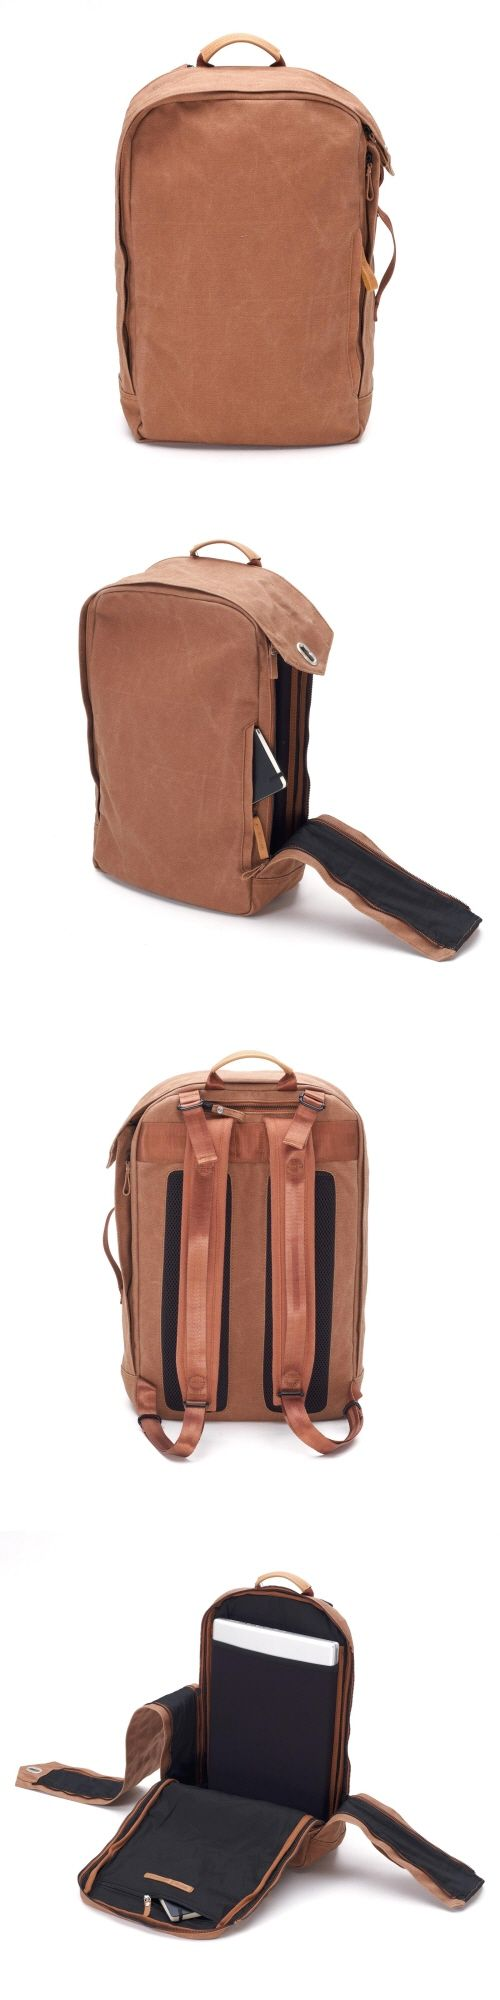 QWSTION 2012 - Backpack Washed Leather Brown | Raddest Men's Fashion Looks On…                                                                                                                                                                                 More